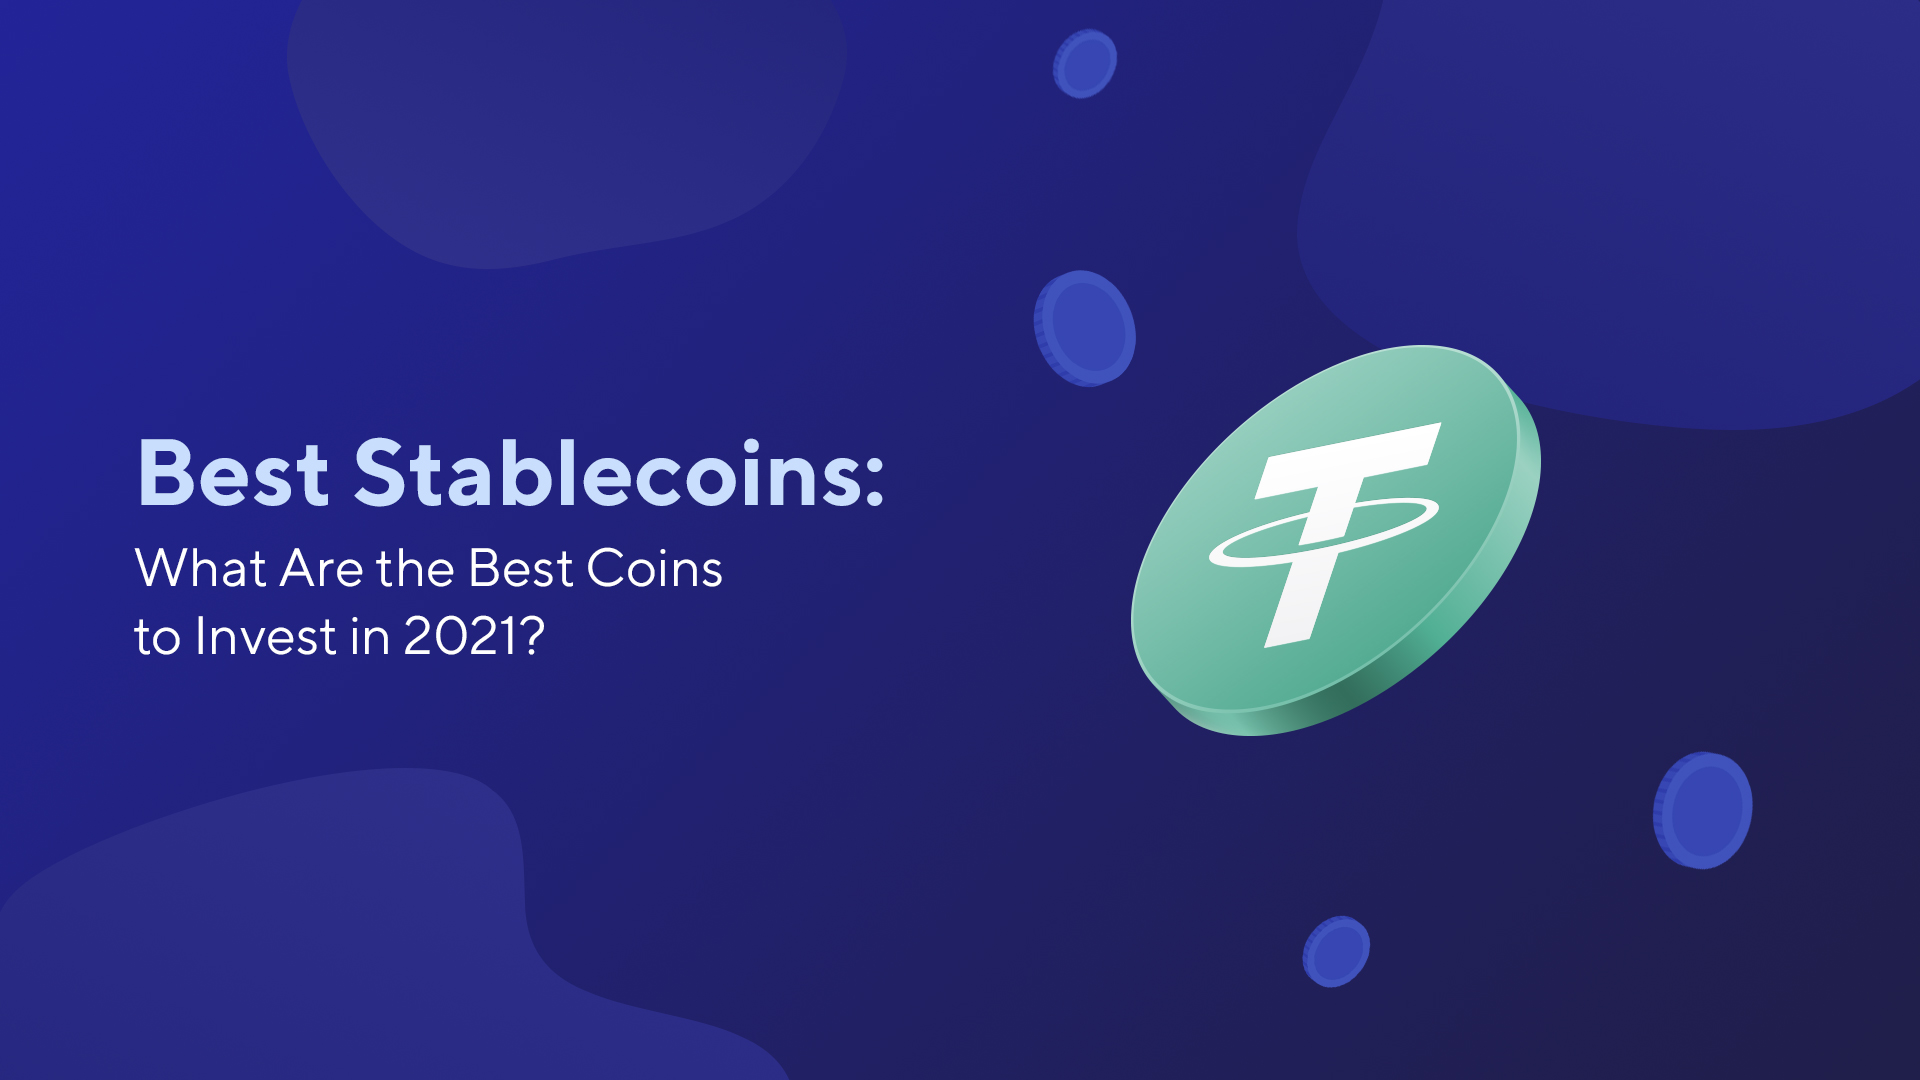 Best Stablecoins: What Are the Best Coins to Invest in 2021?